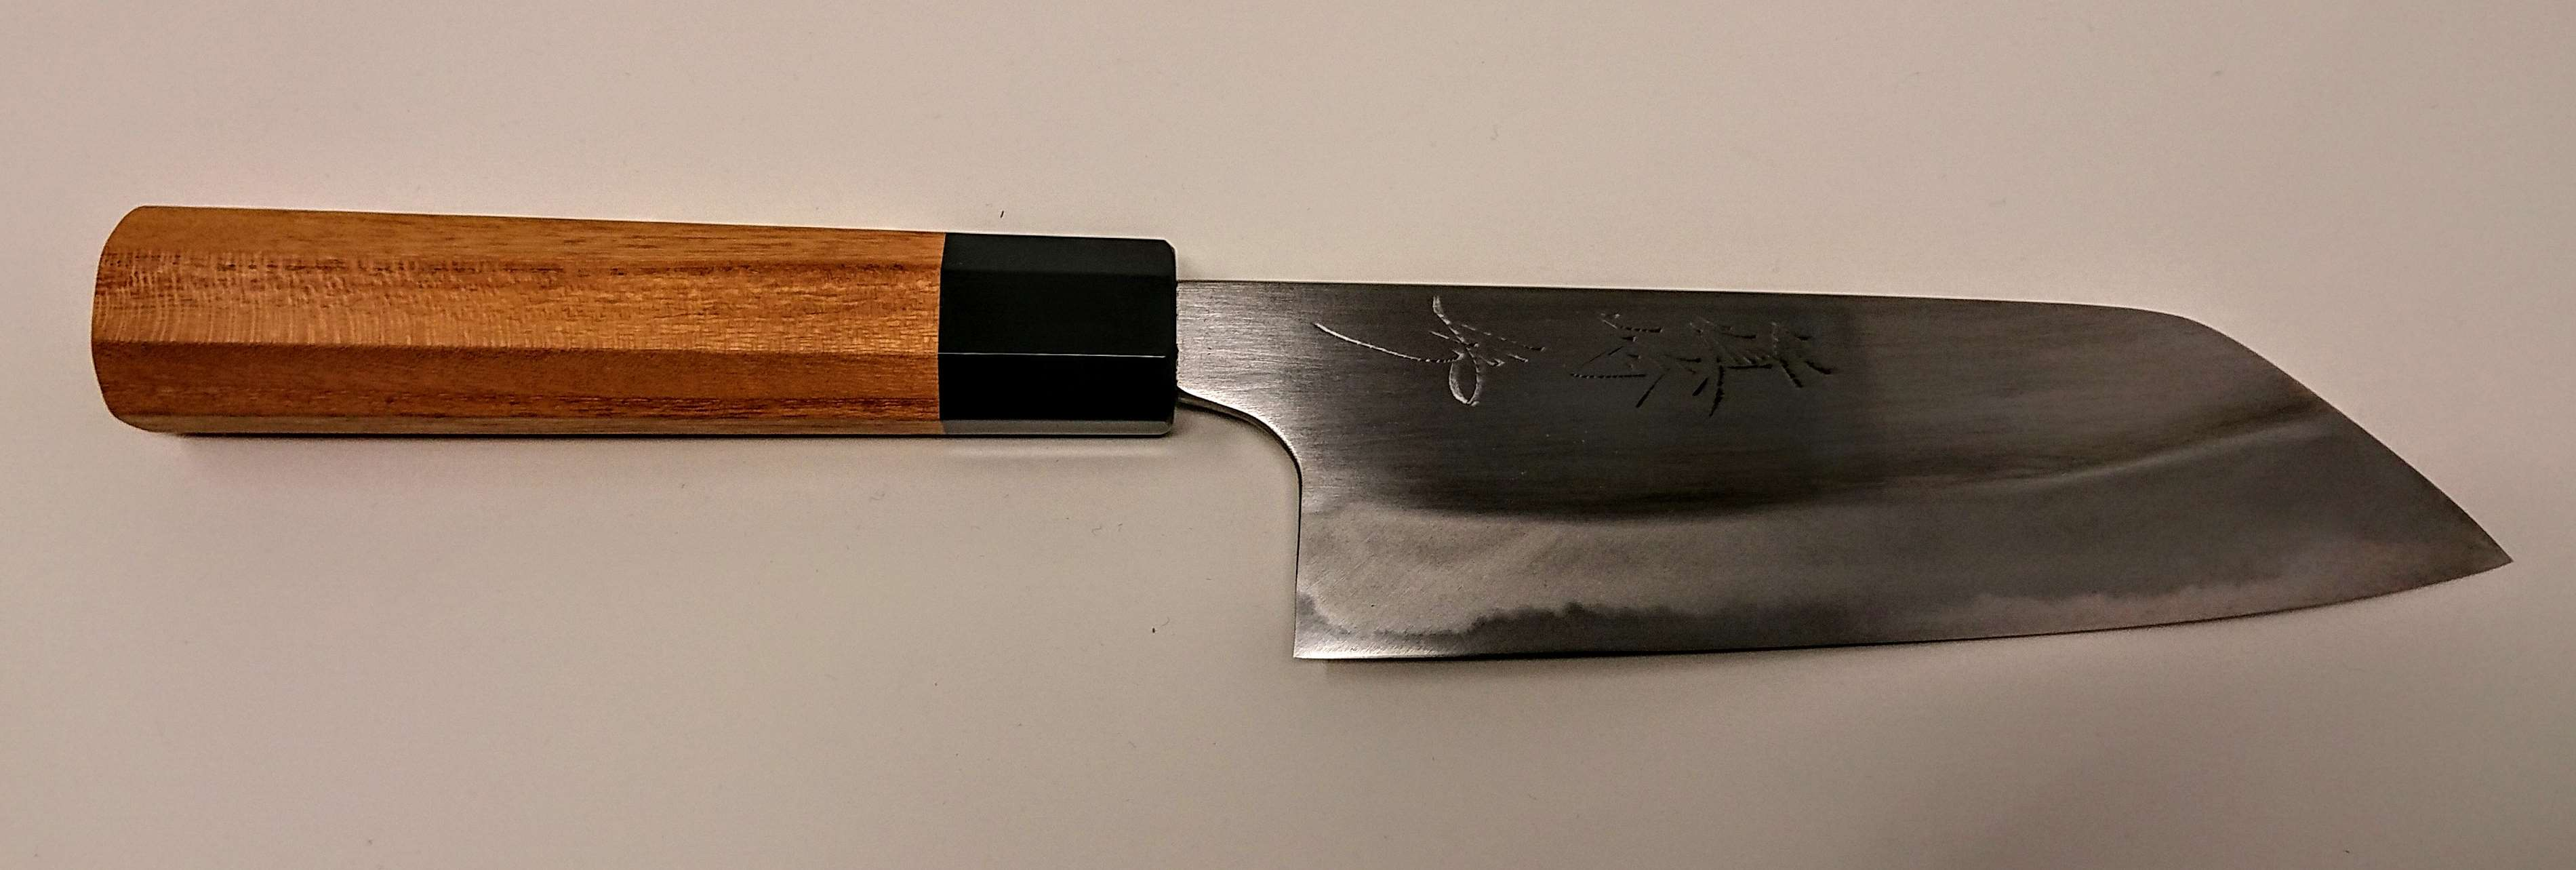 Hammer Forged Shirogami2 Santoku150mm